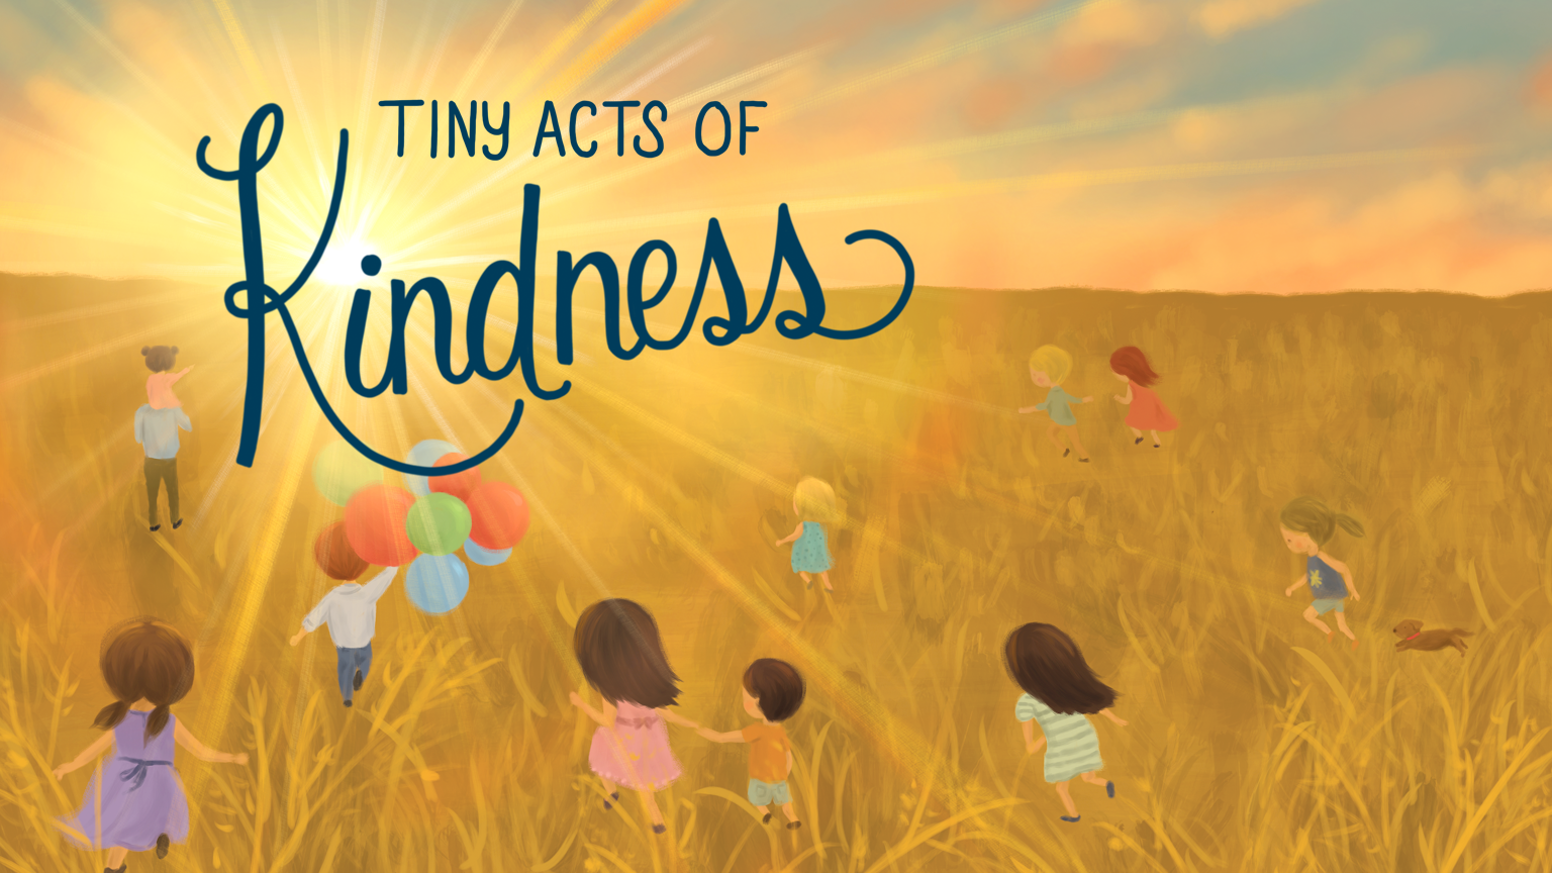 A charming picture book by Thuy Ha celebrating the magic within small acts of kindness.